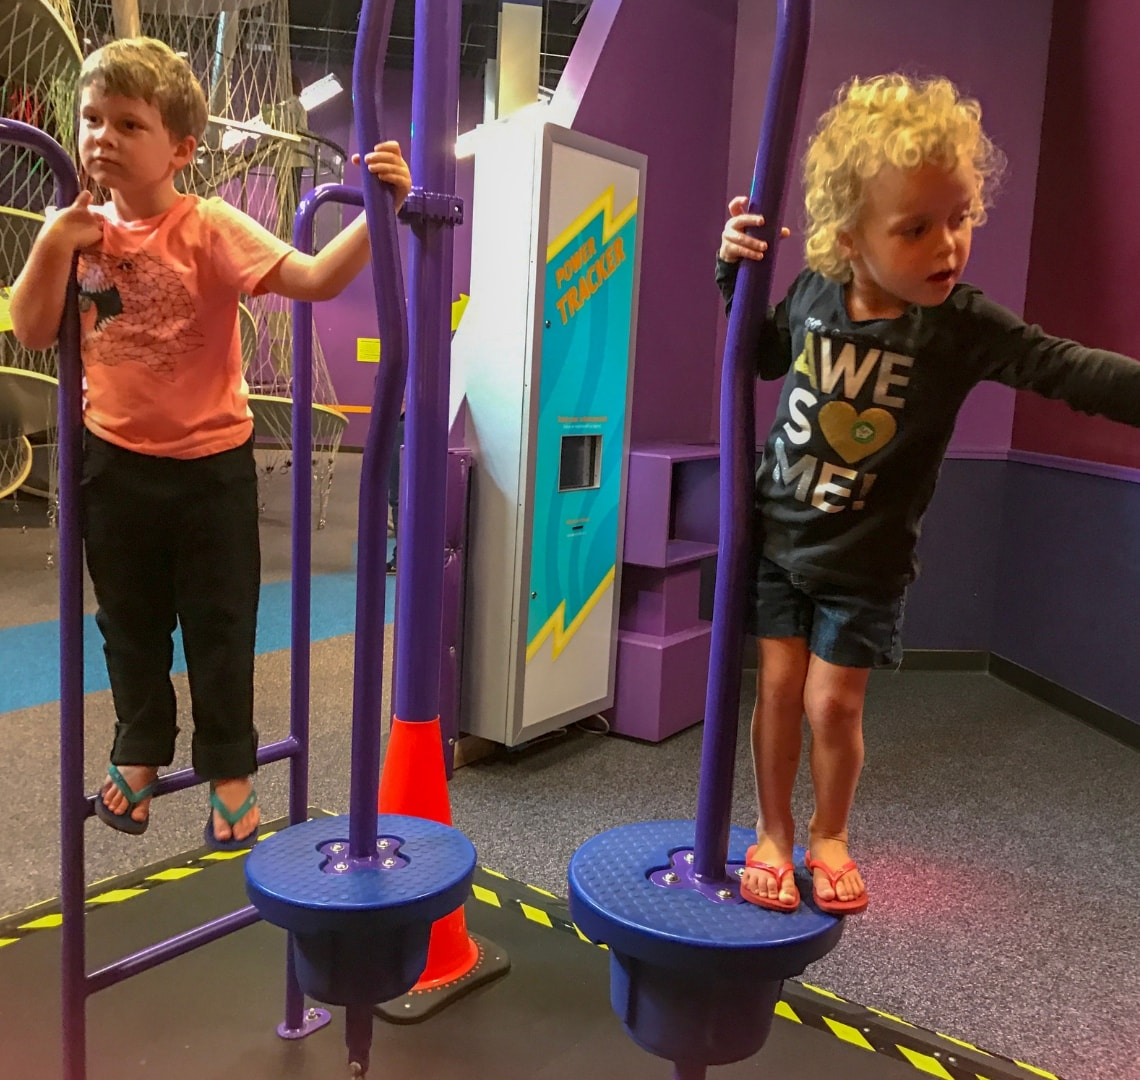 Houston - the Things at the Children's Museum